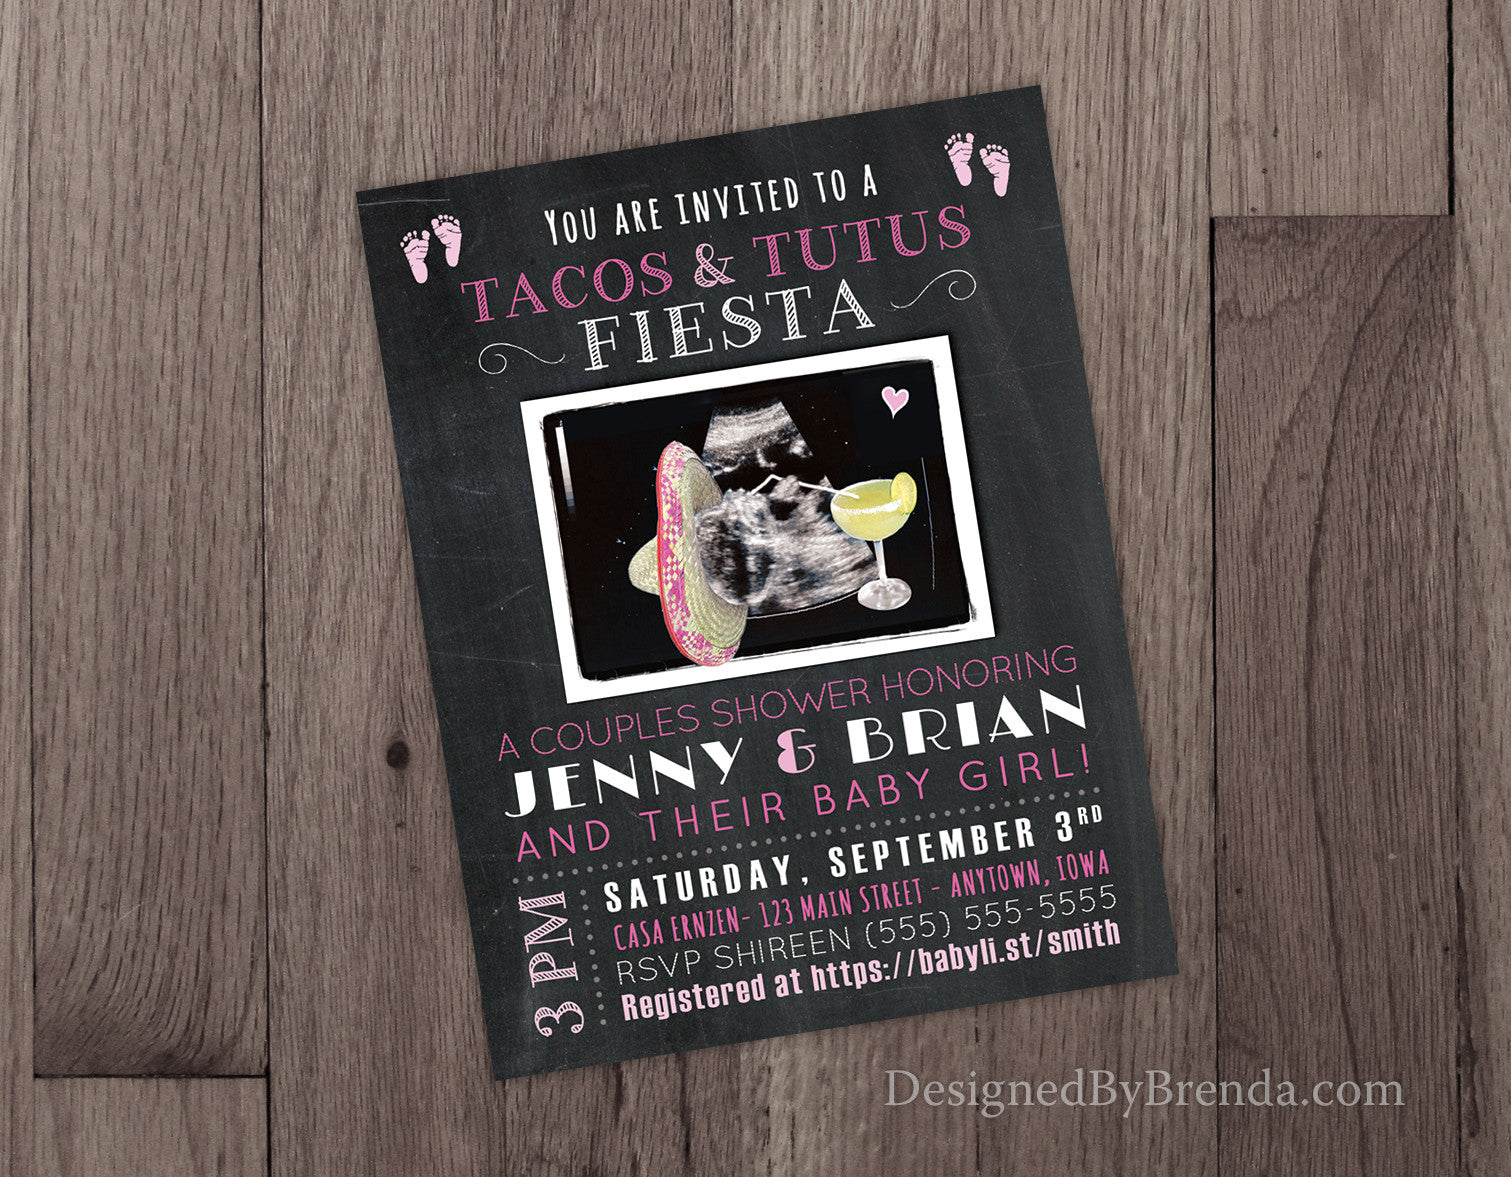 Chalkboard Tacos & Tutus Fiesta Baby Shower Invitation with ...